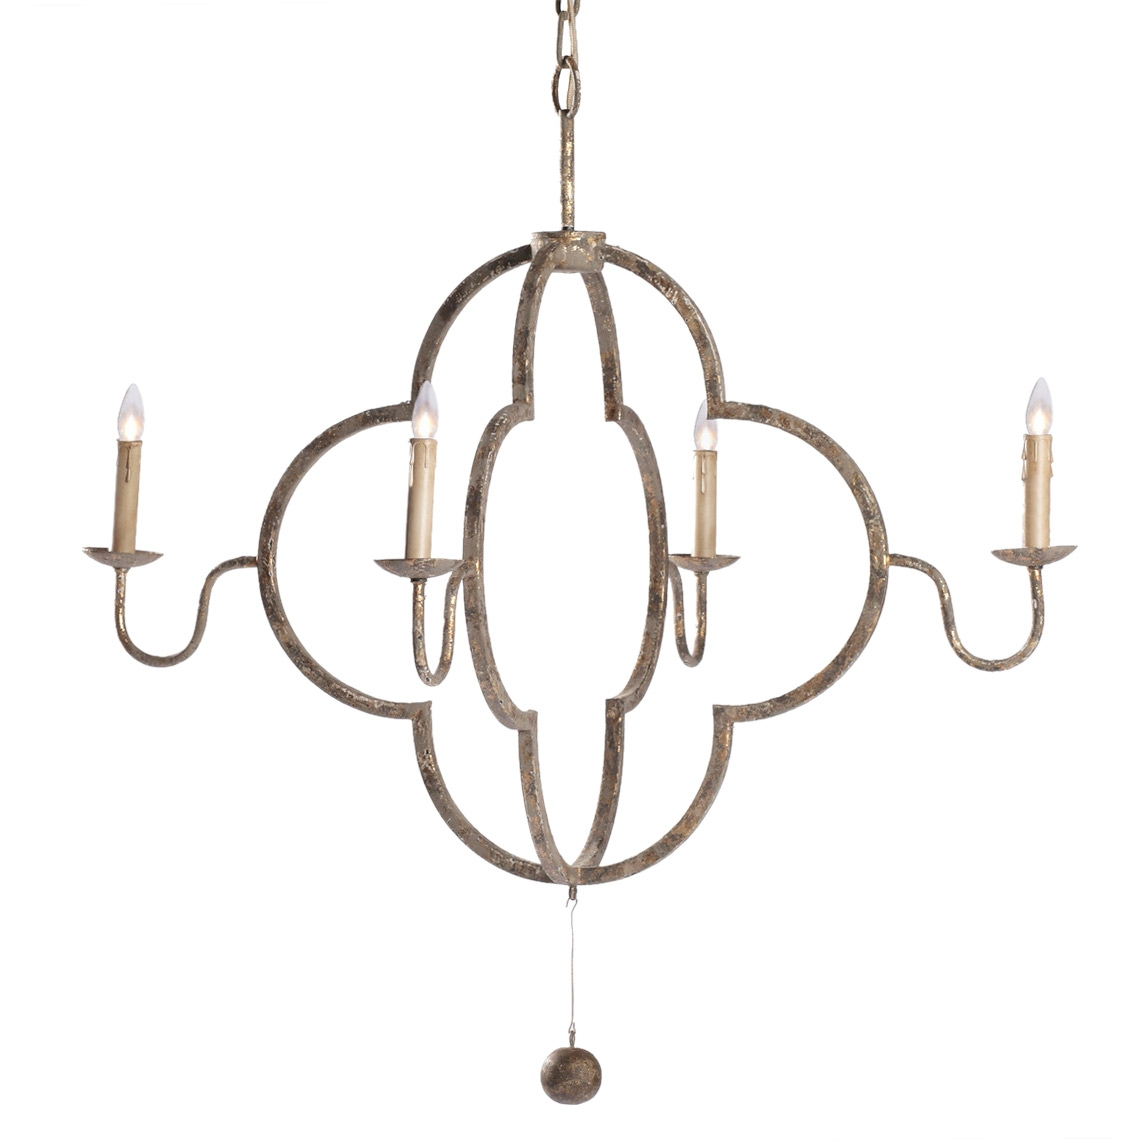 French Country Lighting Style Chandeliers Table Lamps Wall With French Chandelier (Image 11 of 15)